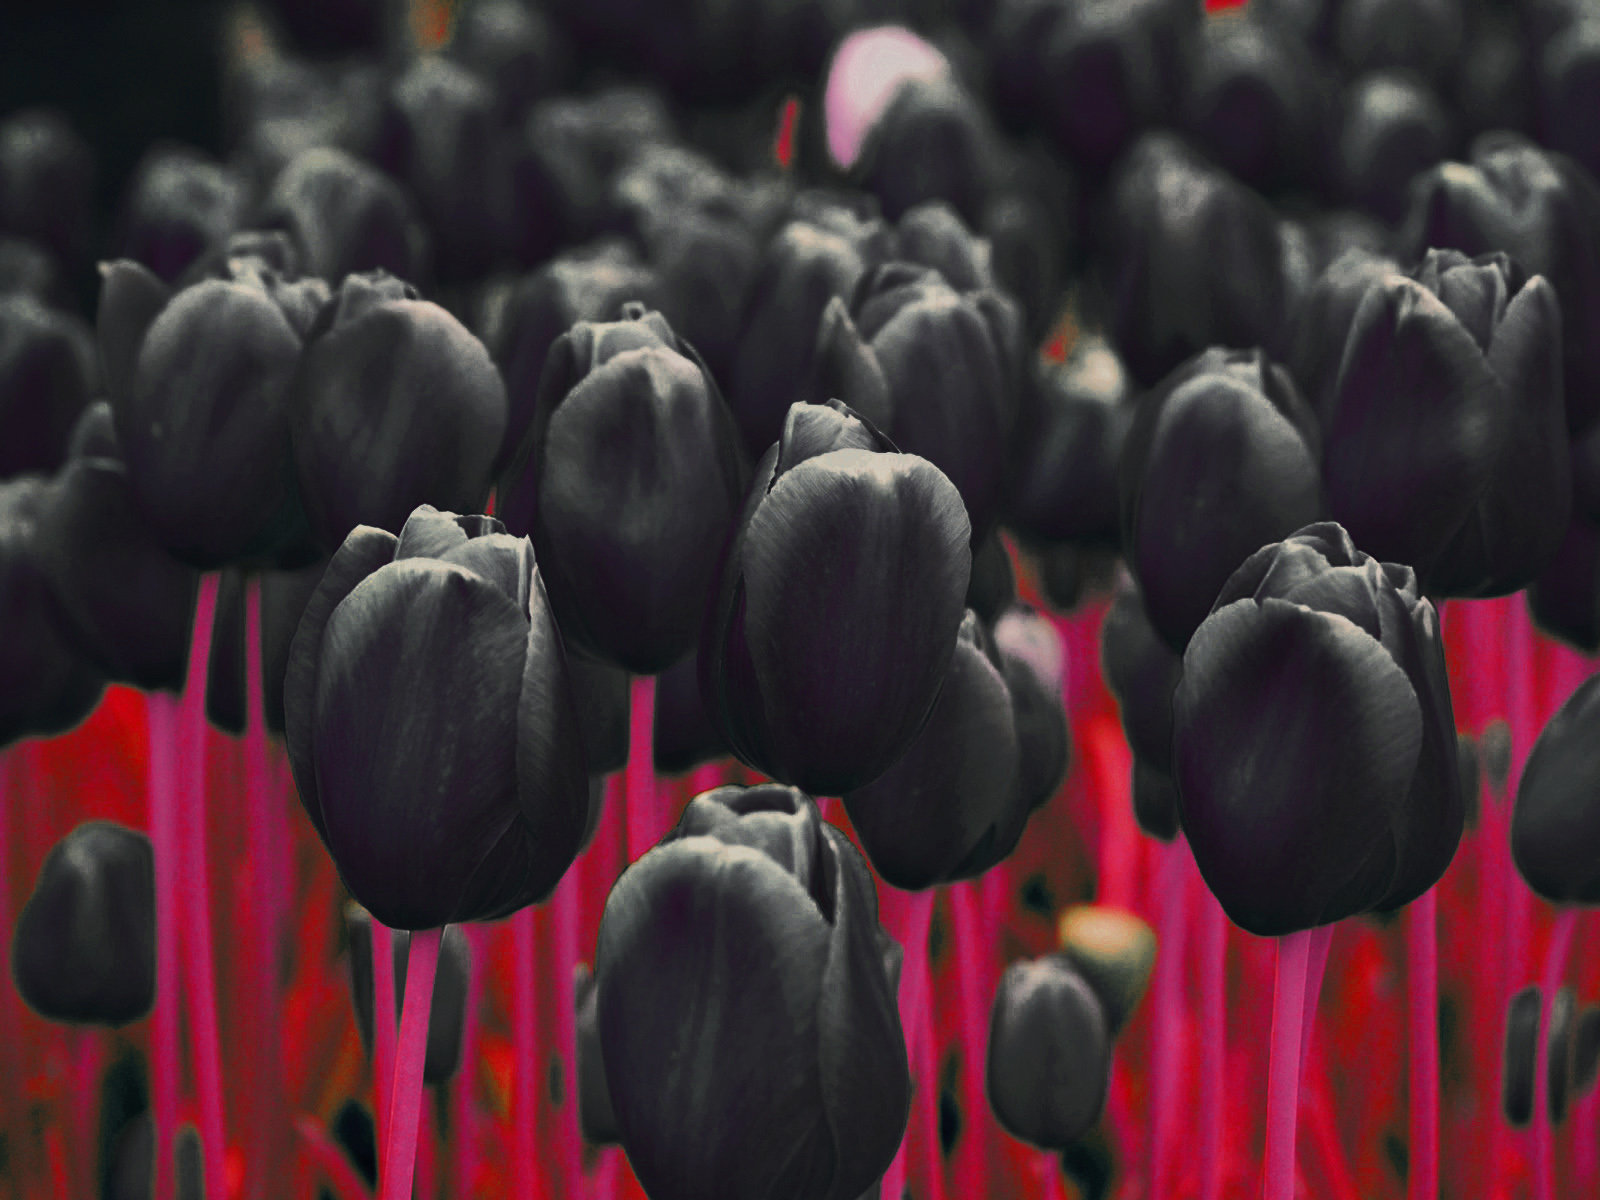 New 3d Wallpaper For Mobile Phone Download Black Tulip Wallpaper Gallery